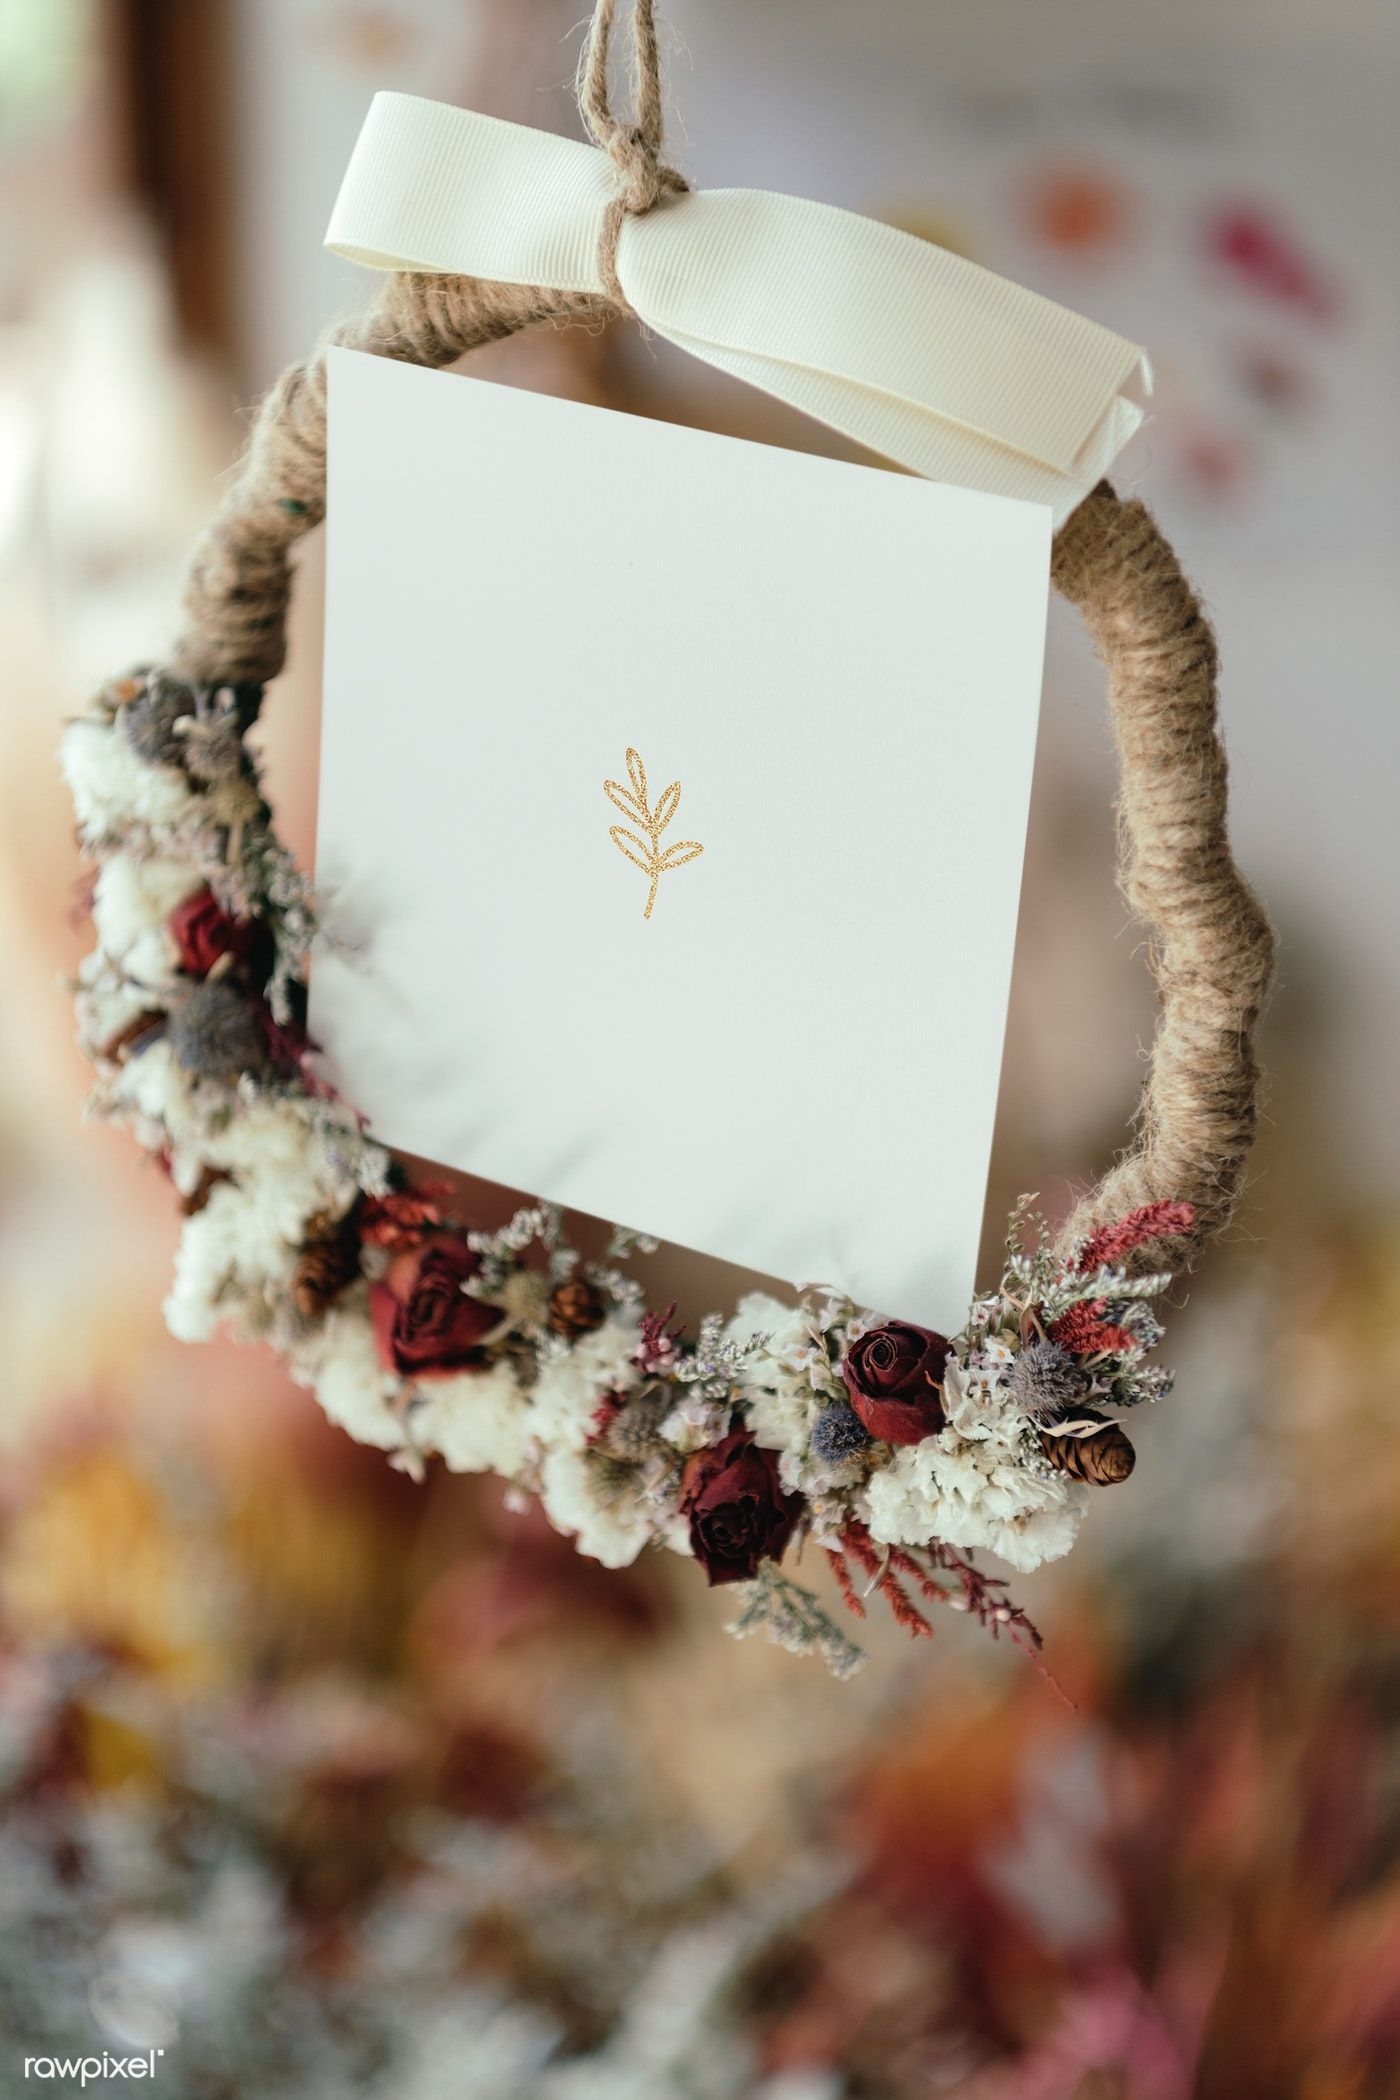 Download premium psd of Dried flowers wreath with a white